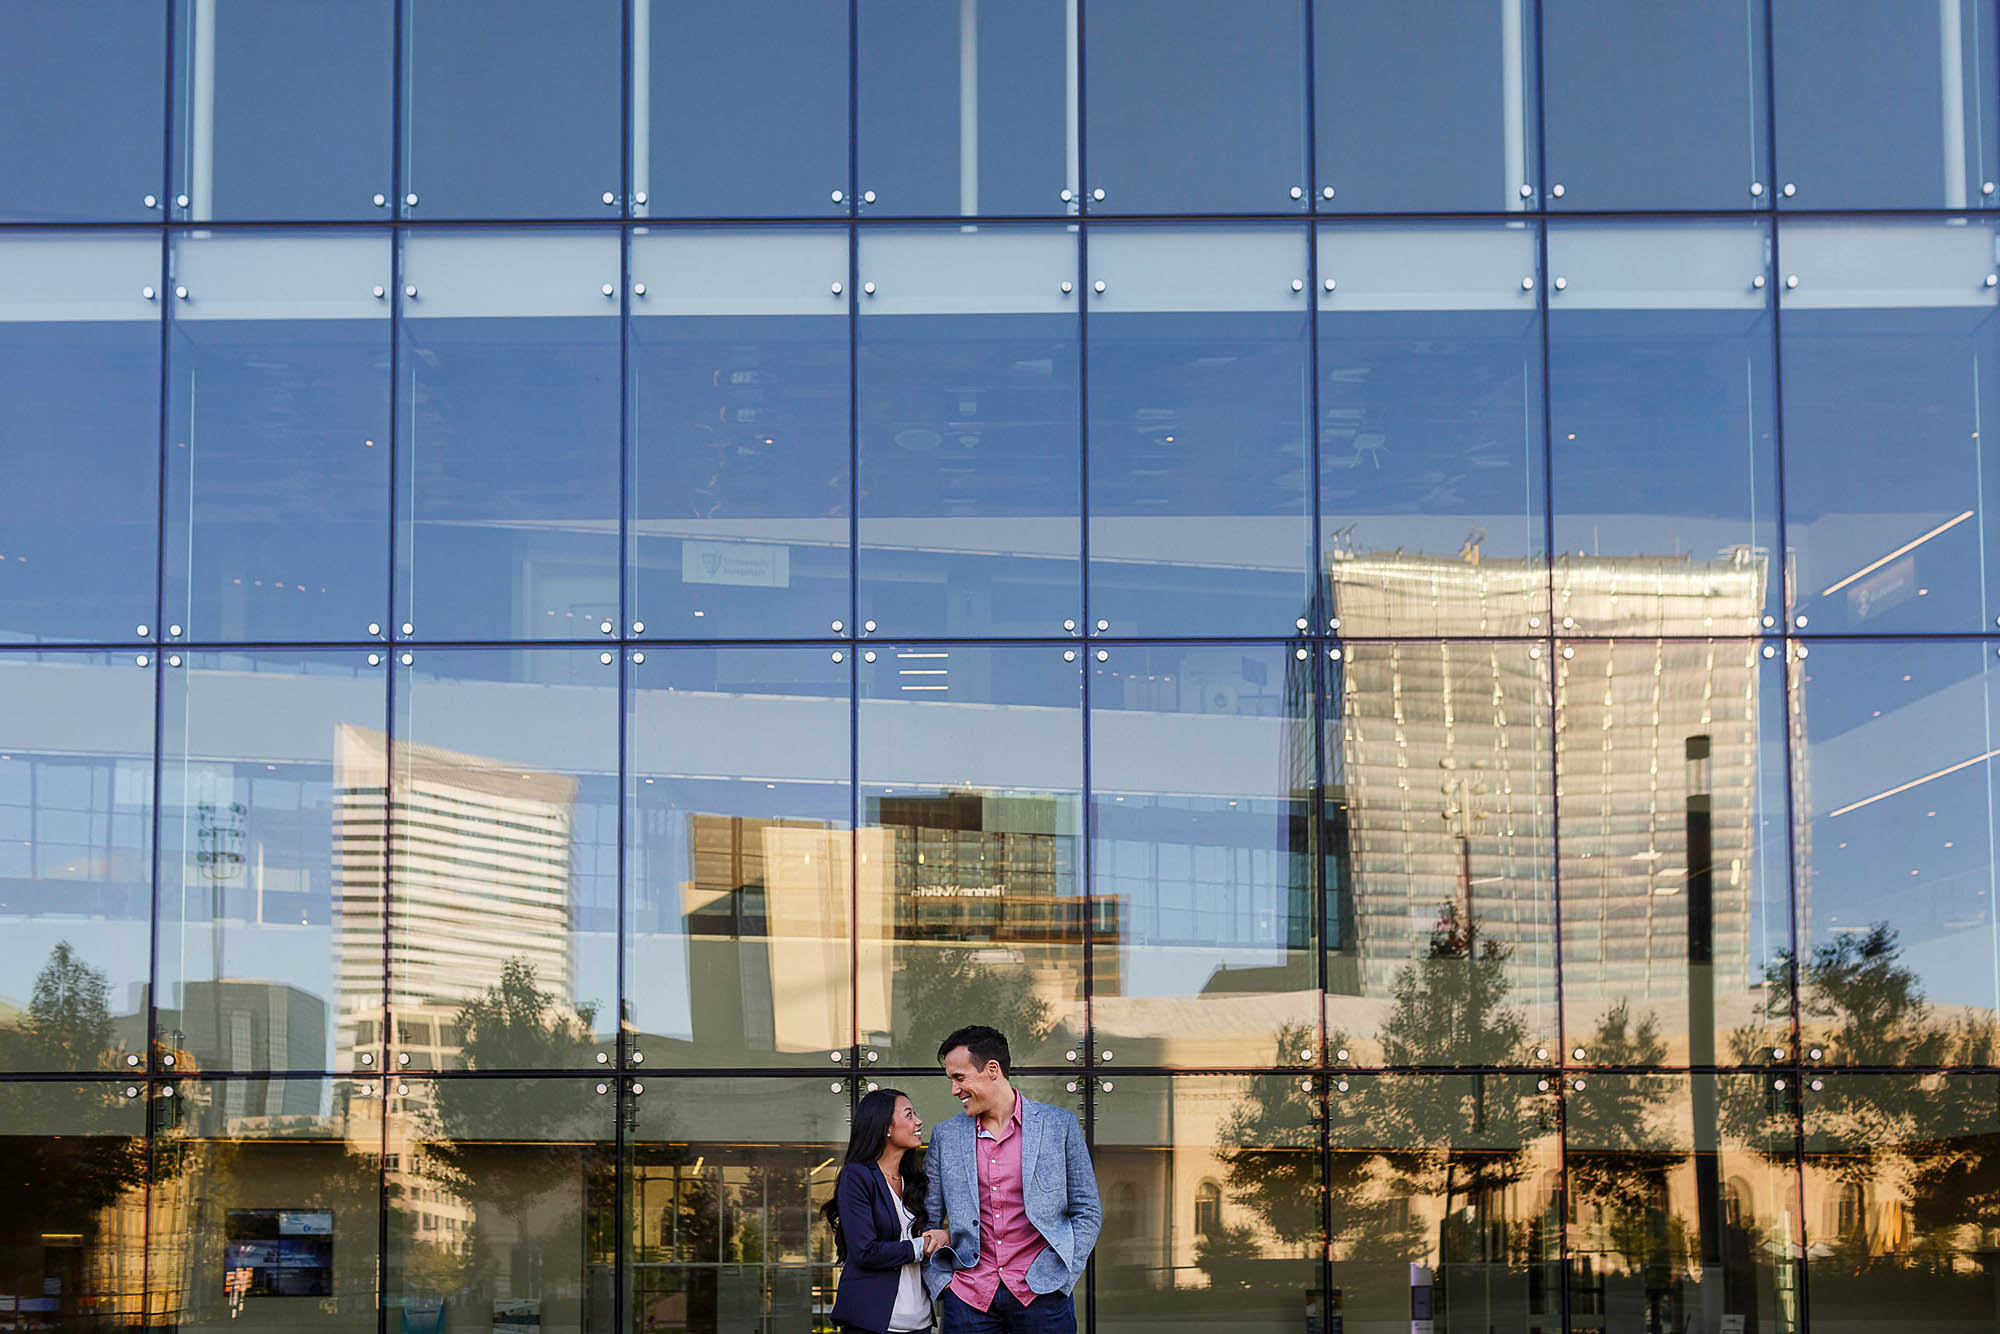 A picture of an engaged couple taken from a distance and waist up where the couple has their arms linked and heads turned toward each other while they stand up against a glass windowed building in downtown Cleveland with the skyline reflecting in the glass.